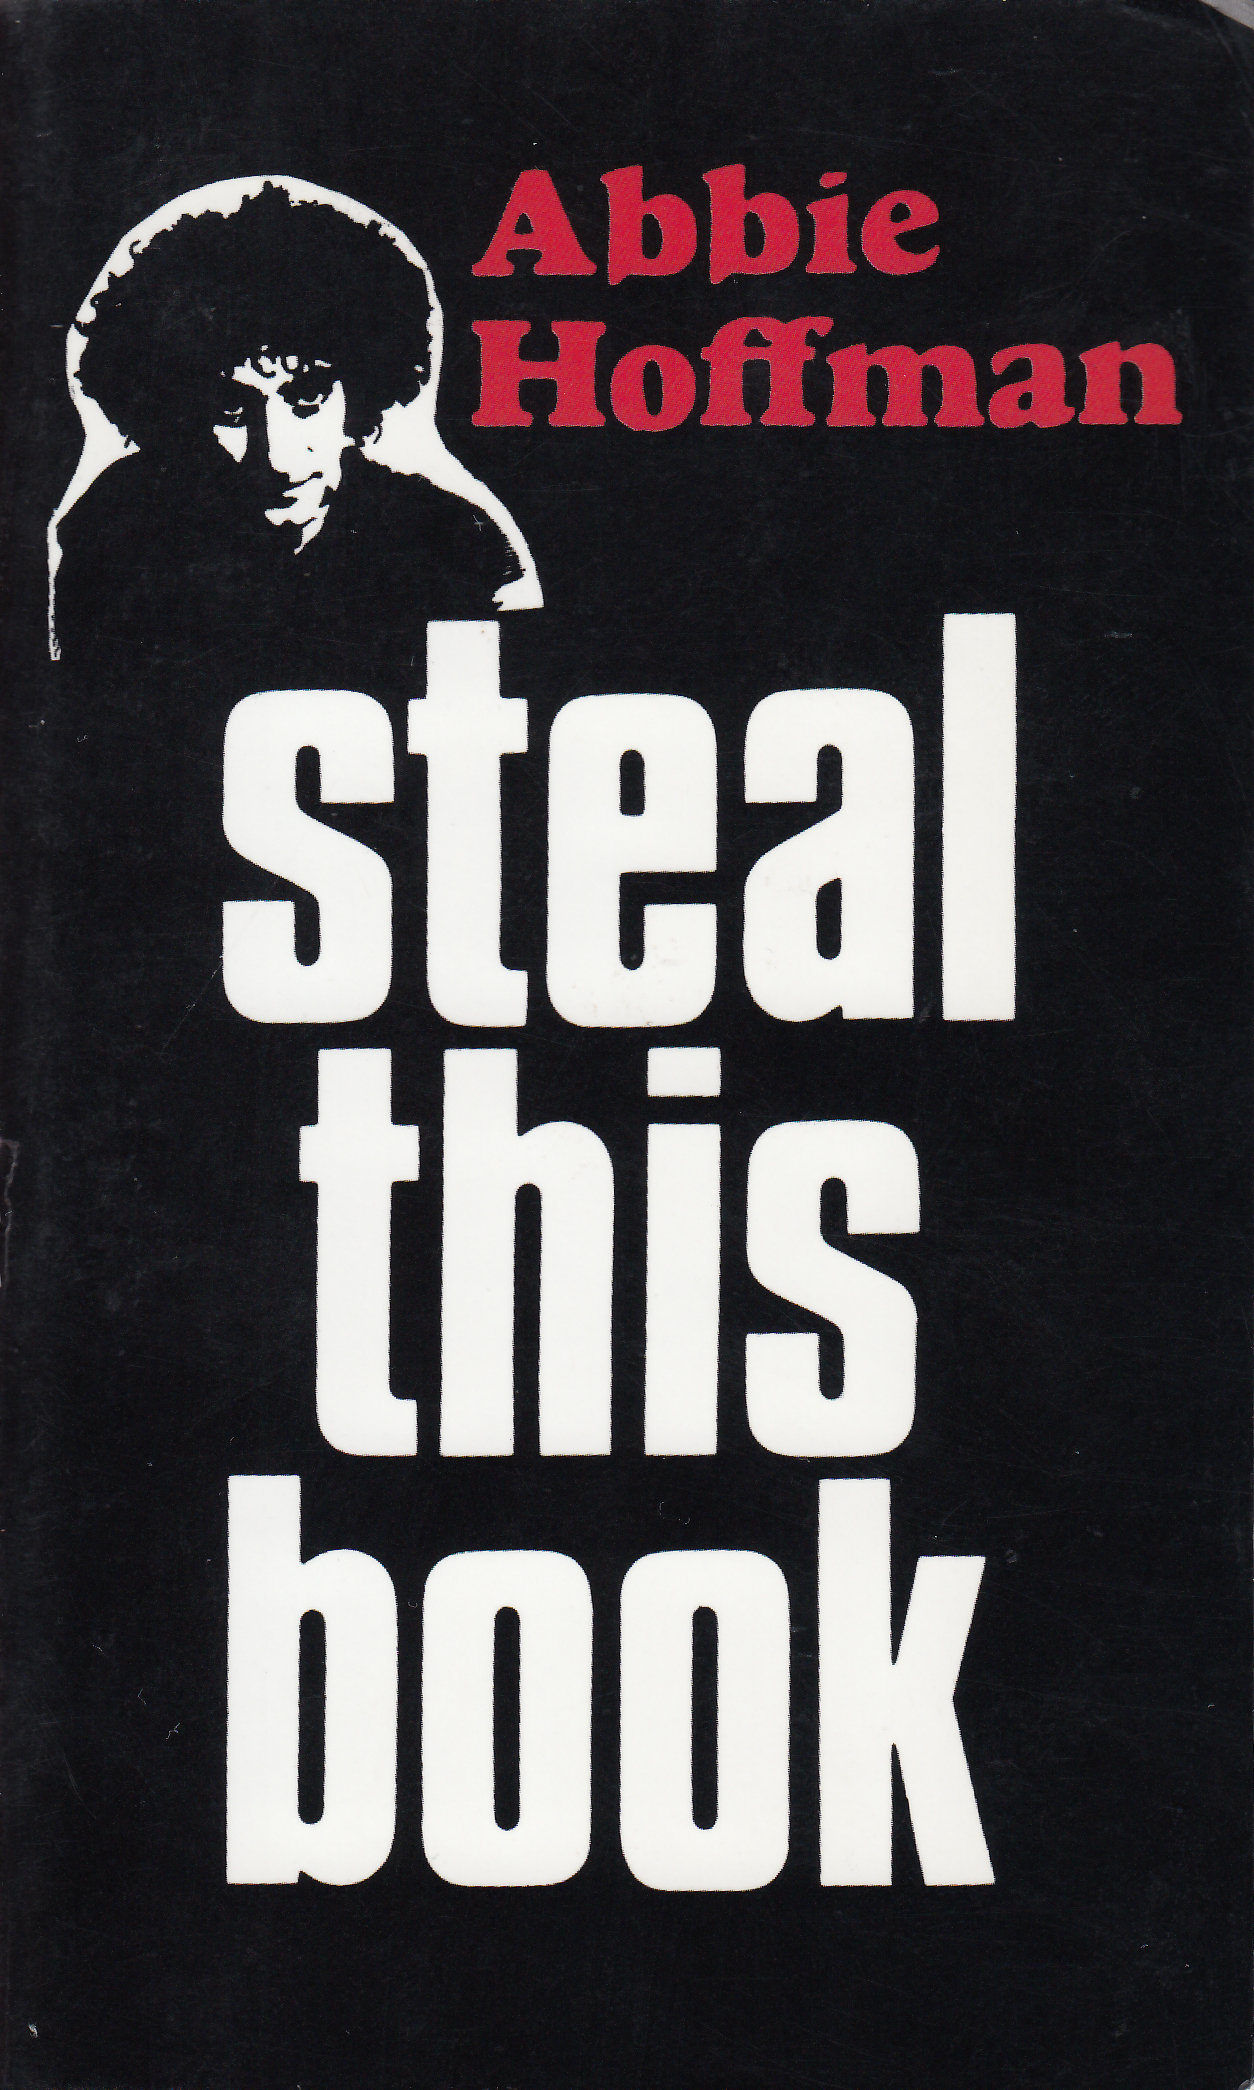 The cover of Abbie Hoffman's book